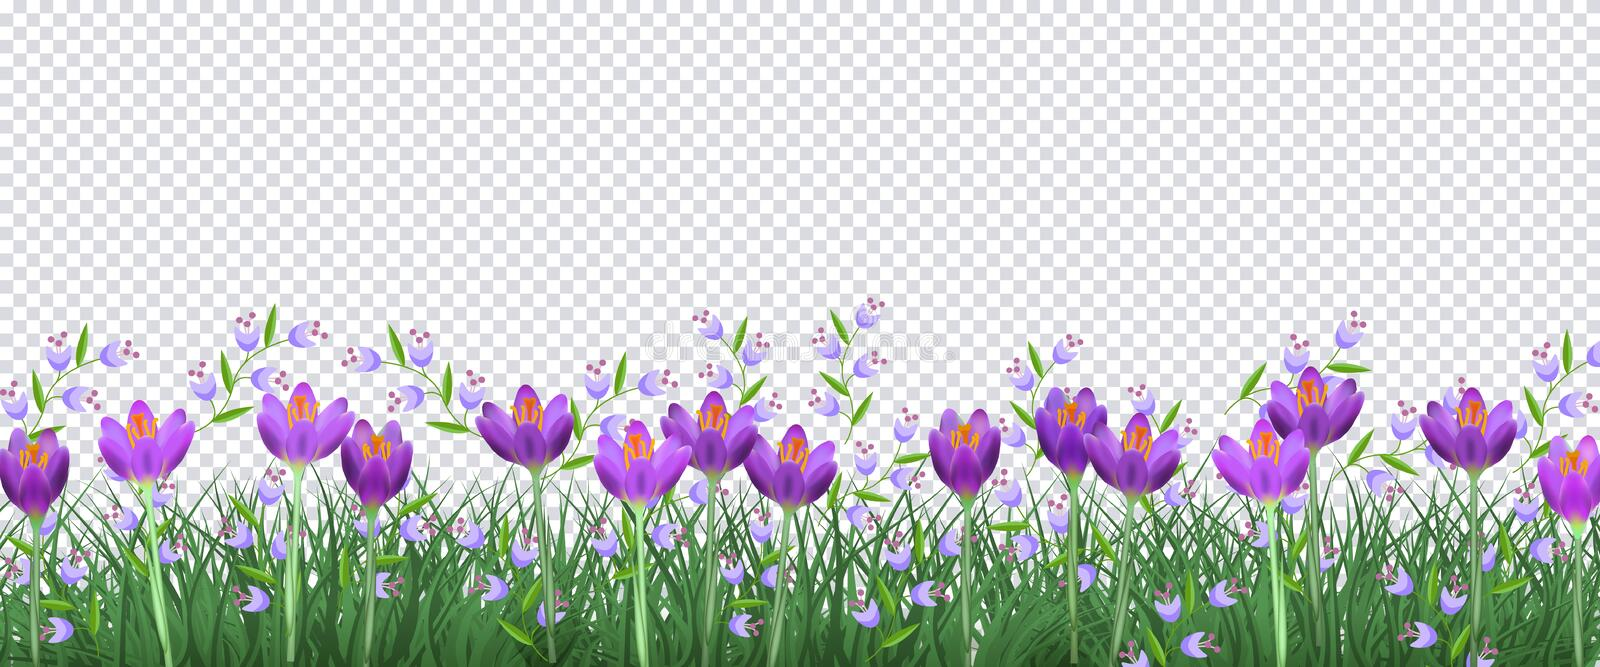 Spring floral border with bright purple crocuses and little blue wild flowers on green grass on transparent background. royalty free illustration